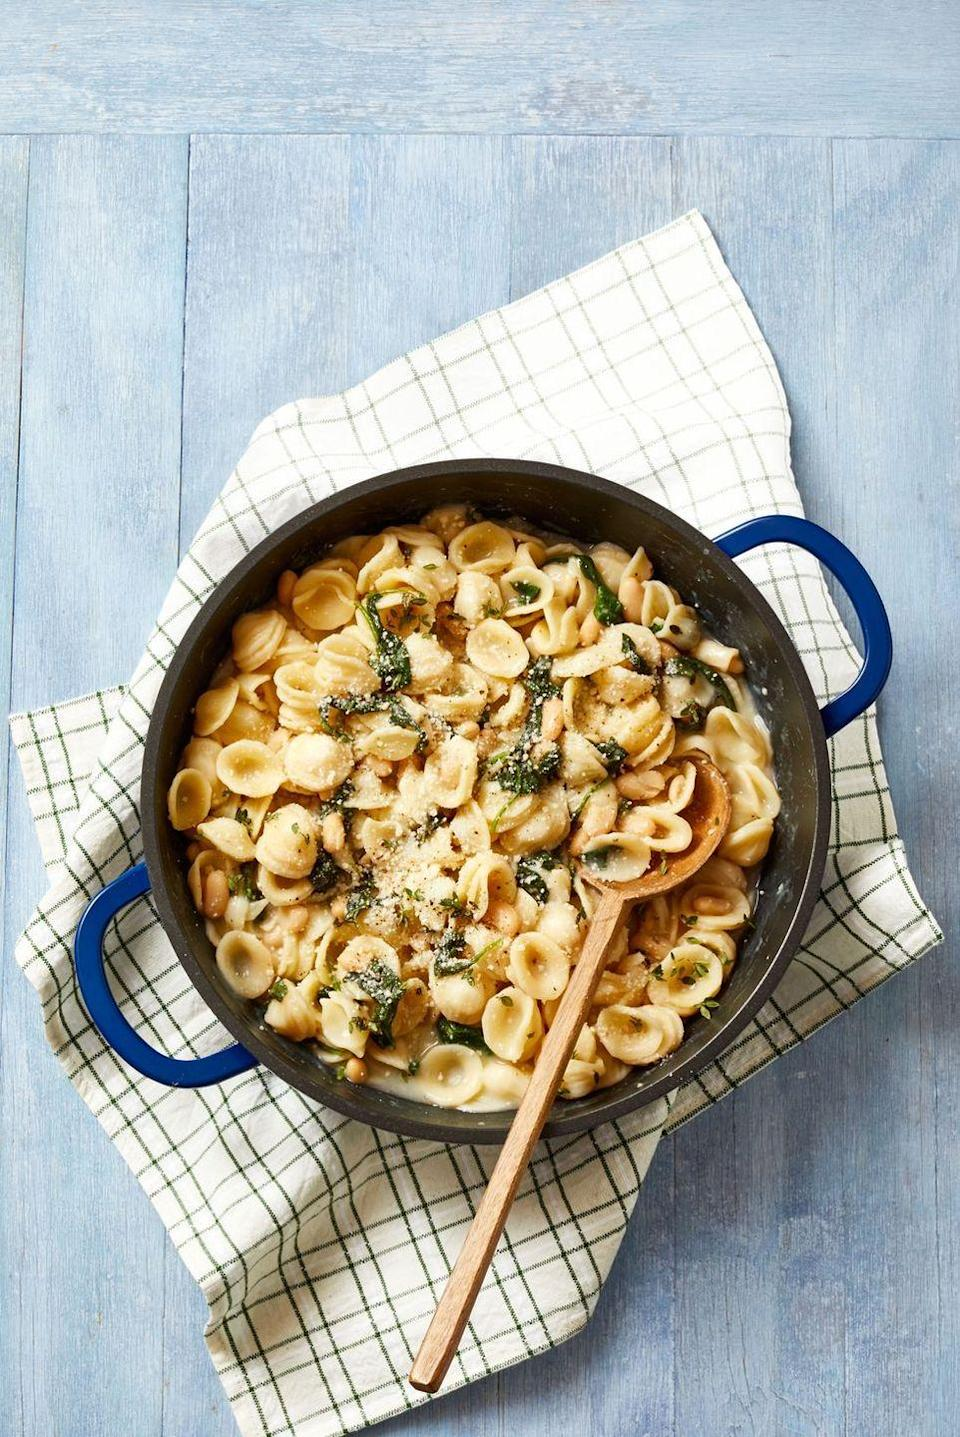 """<p>Hearty orecchiette pasta gets a flavor boost from plenty of golden garlic and Parm. Not eating gluten? Make it with one of our favorite <a href=""""https://www.goodhousekeeping.com/food-products/g32353970/best-gluten-free-pastas/"""" rel=""""nofollow noopener"""" target=""""_blank"""" data-ylk=""""slk:gluten-free pastas"""" class=""""link rapid-noclick-resp"""">gluten-free pastas</a>.<br></p><p><em><a href=""""https://www.goodhousekeeping.com/food-recipes/a34463100/orecchiette-with-white-beans-and-spinach-recipe/"""" rel=""""nofollow noopener"""" target=""""_blank"""" data-ylk=""""slk:Get the recipe for Orecchiette With White Beans and Spinach »"""" class=""""link rapid-noclick-resp"""">Get the recipe for Orecchiette With White Beans and Spinach »</a></em></p>"""